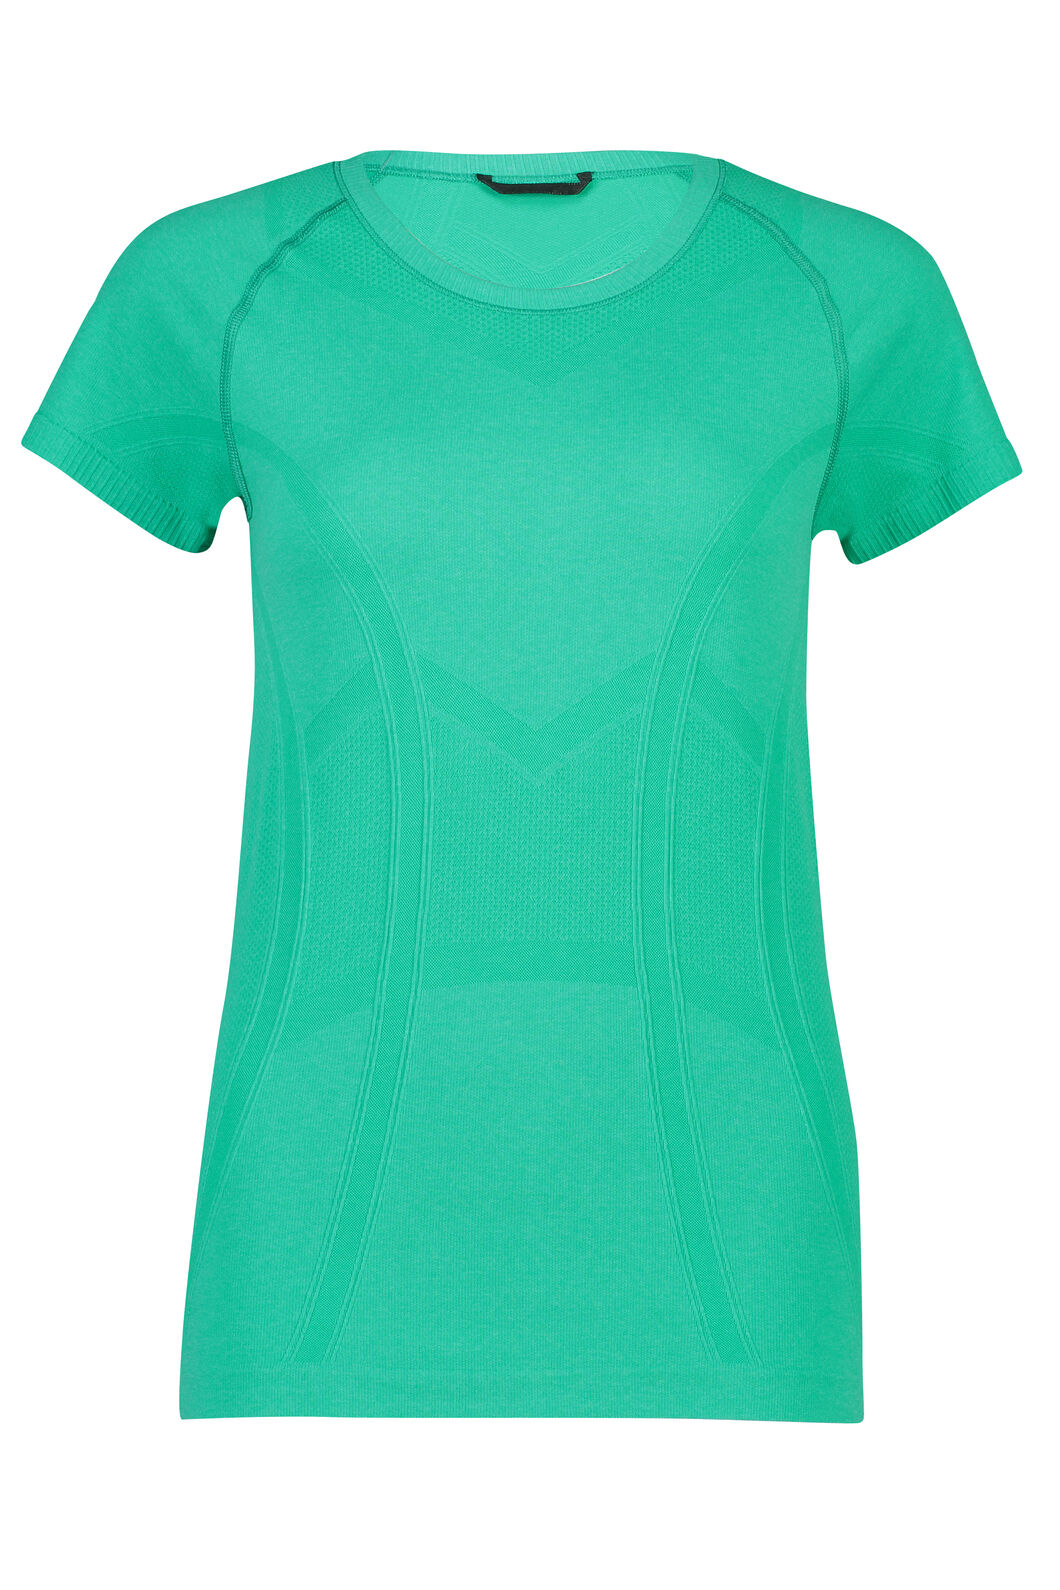 Limitless Short Sleeve Tee - Women's, Deep Green, hi-res